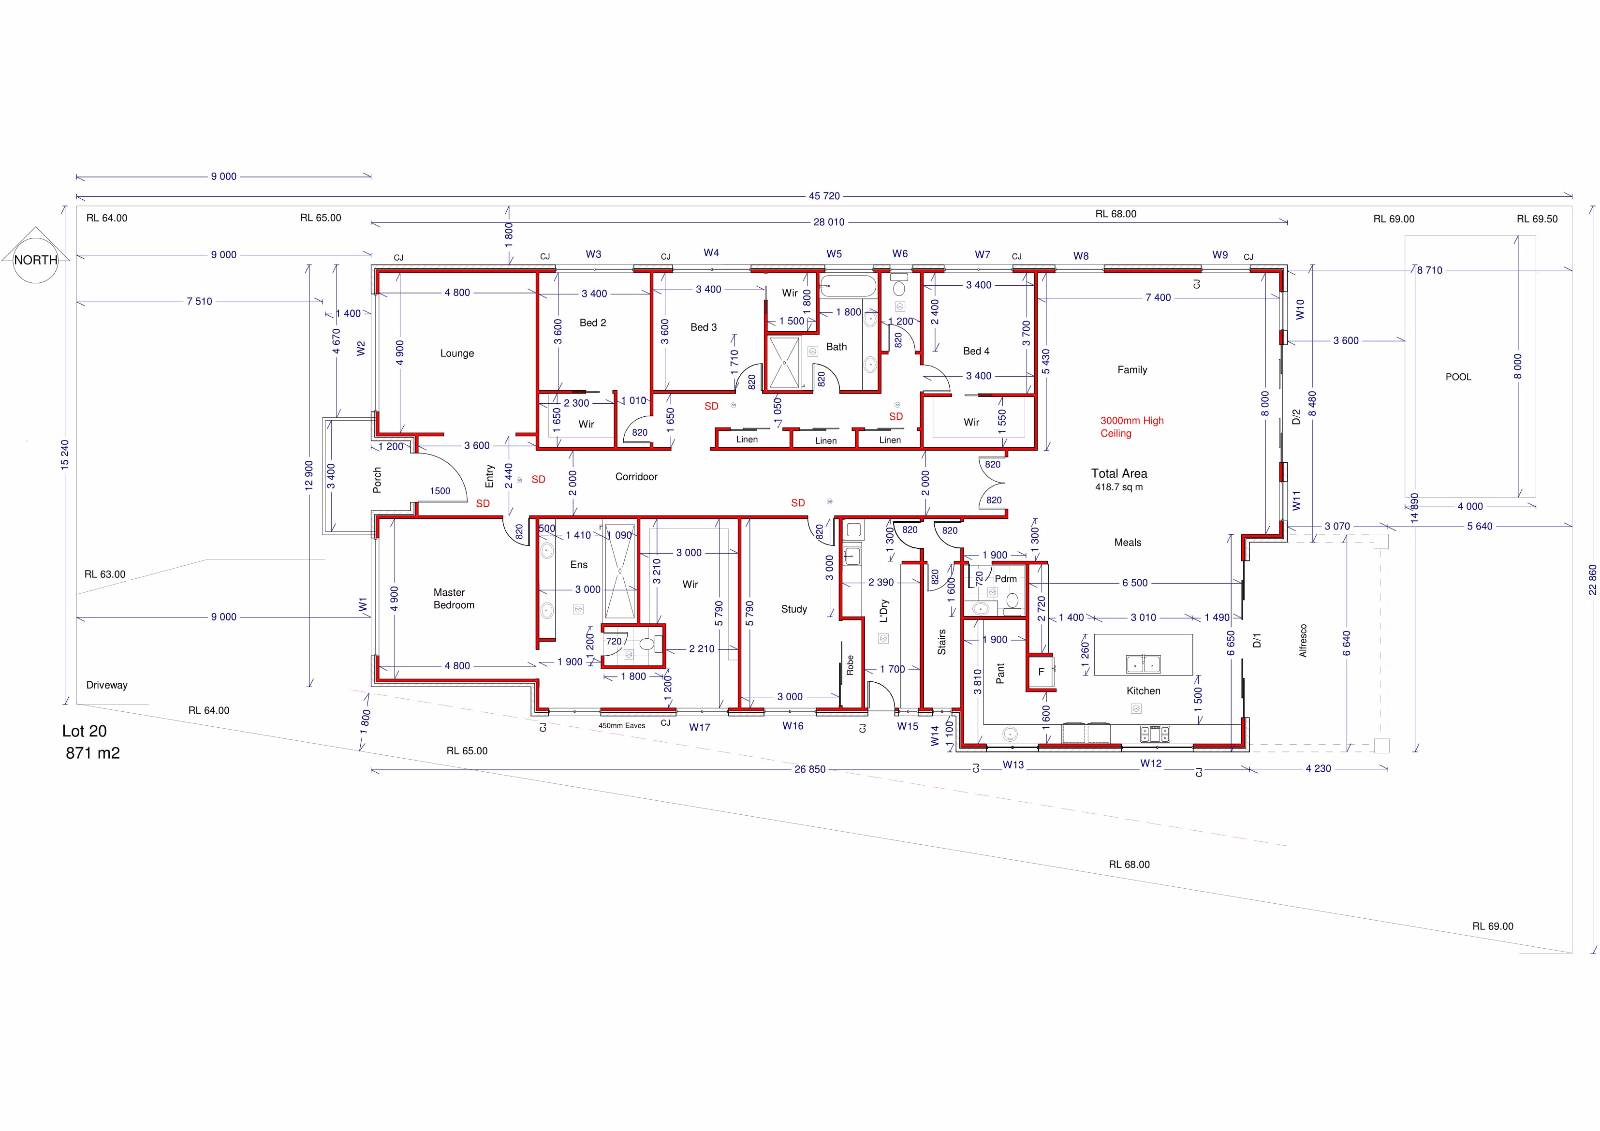 New house floor plan advice please.